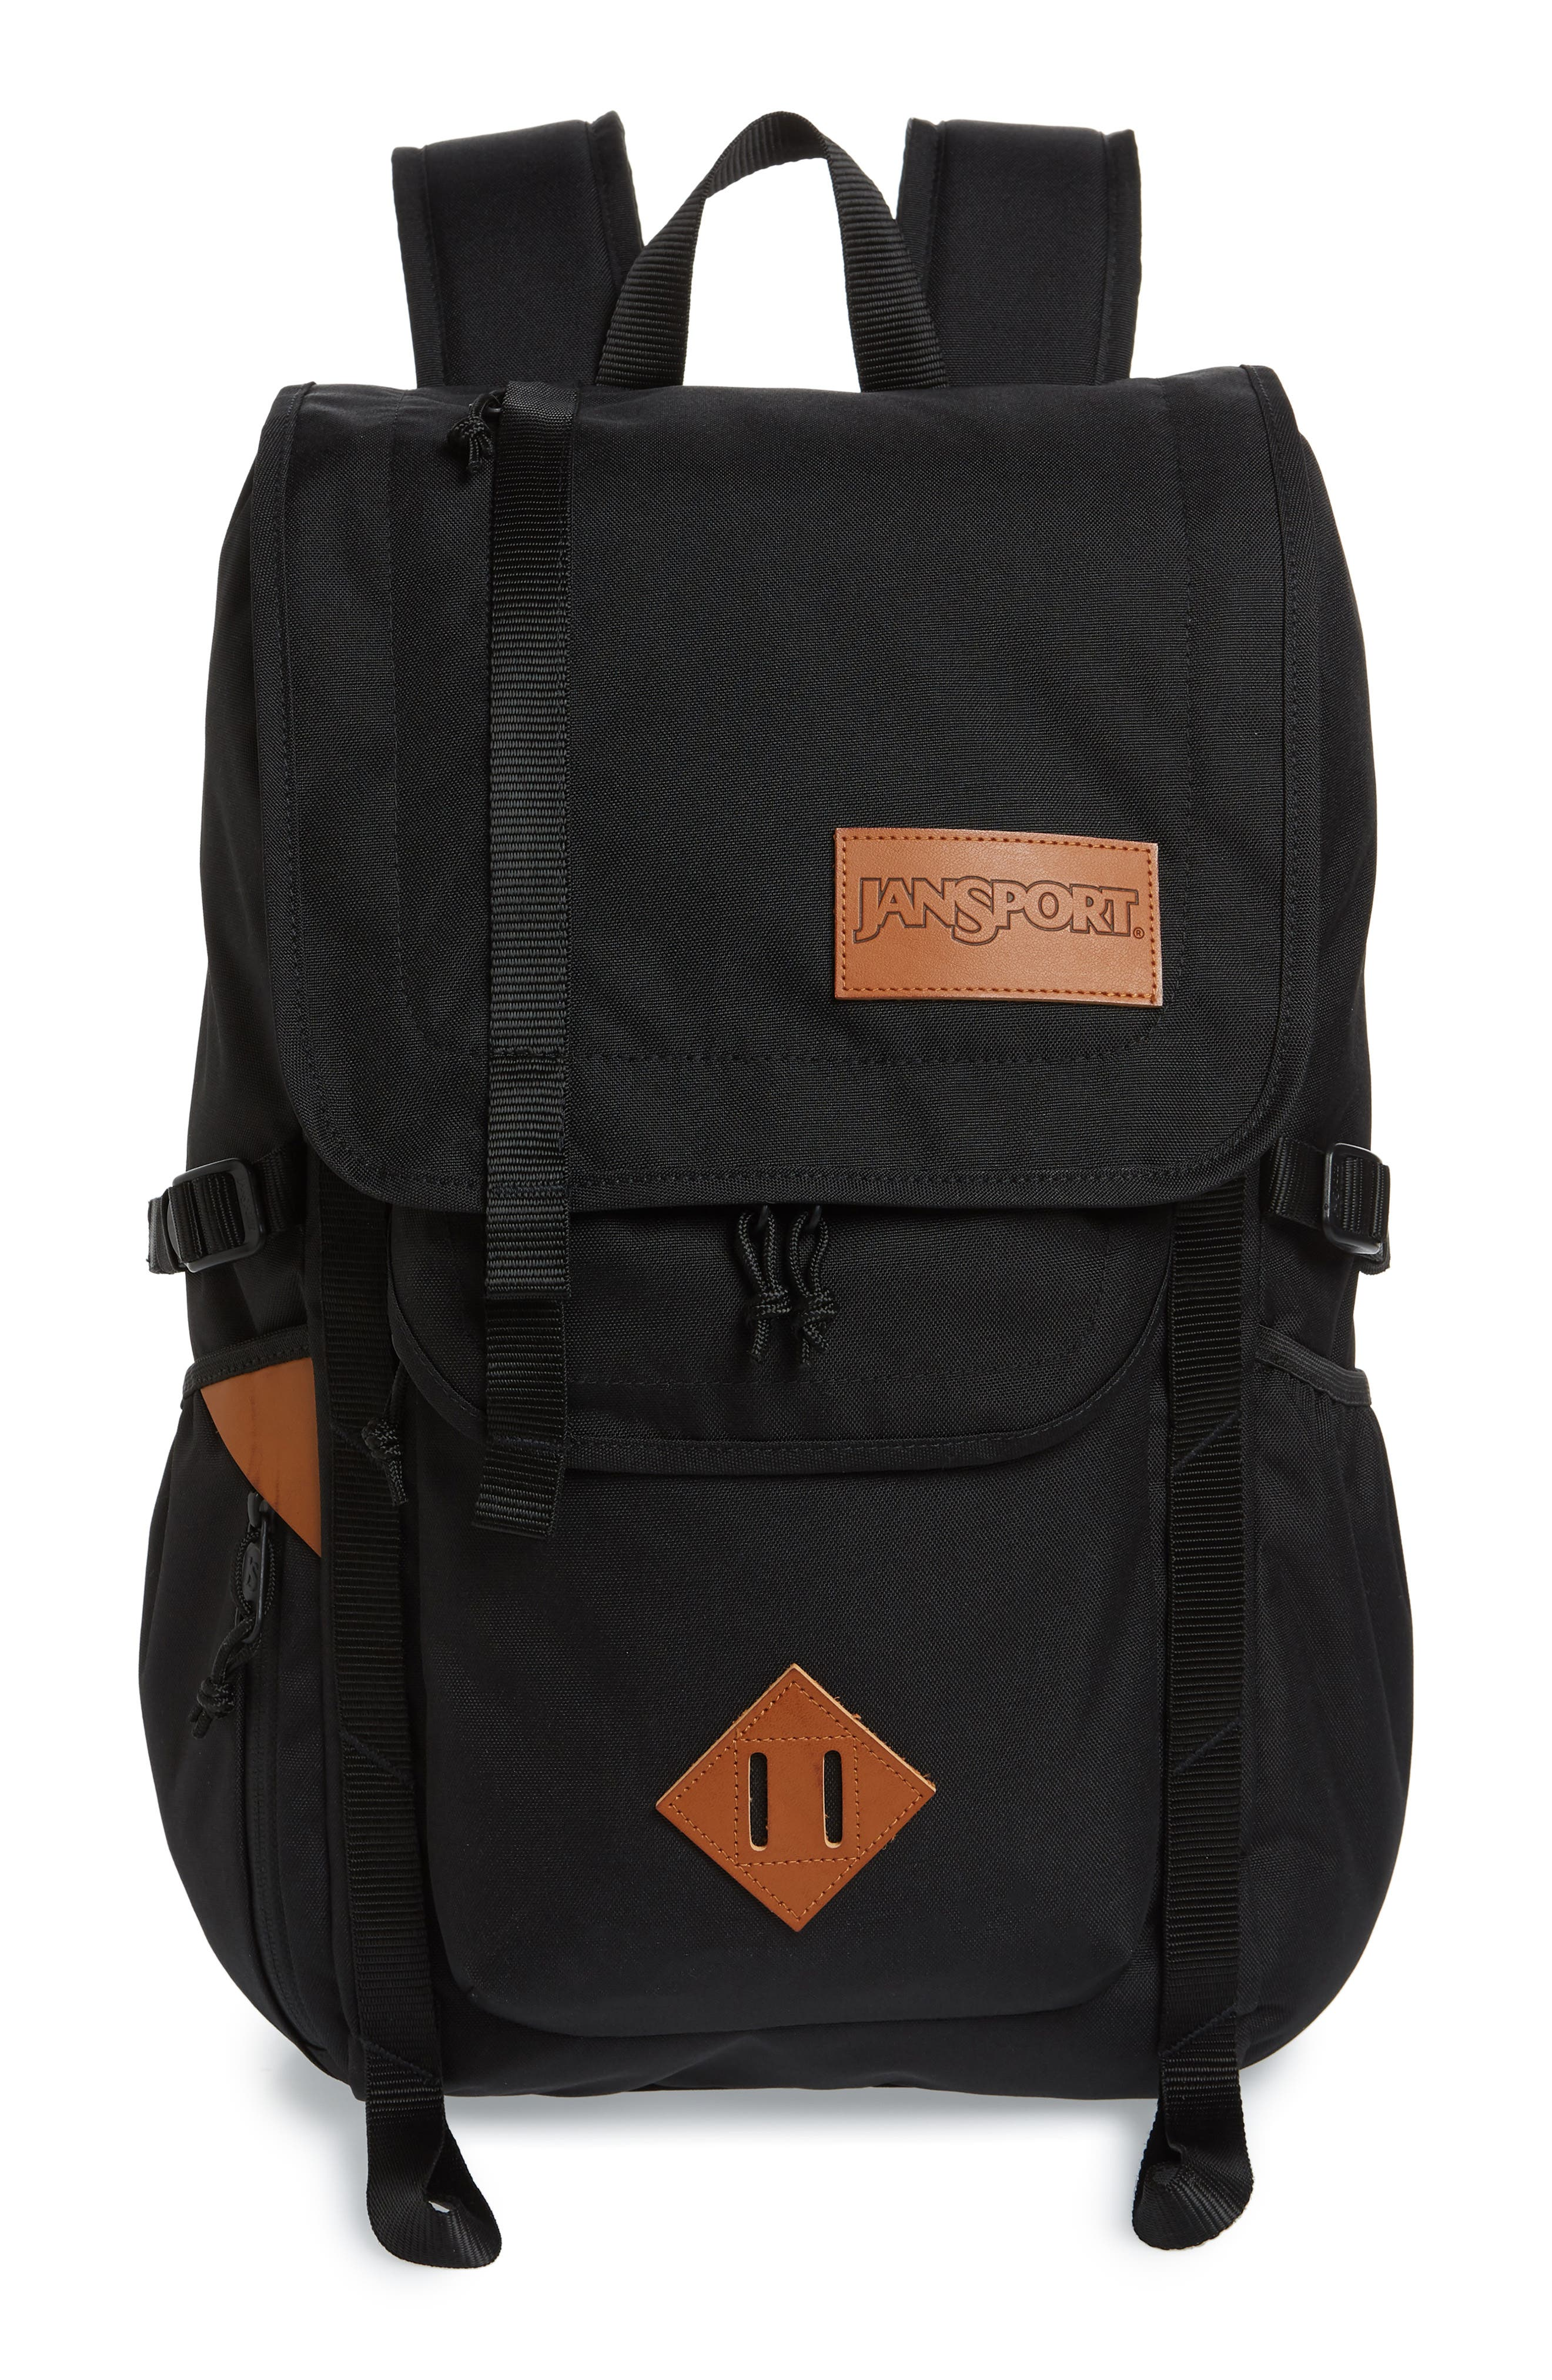 JANSPORT Hatchet Backpack - Black